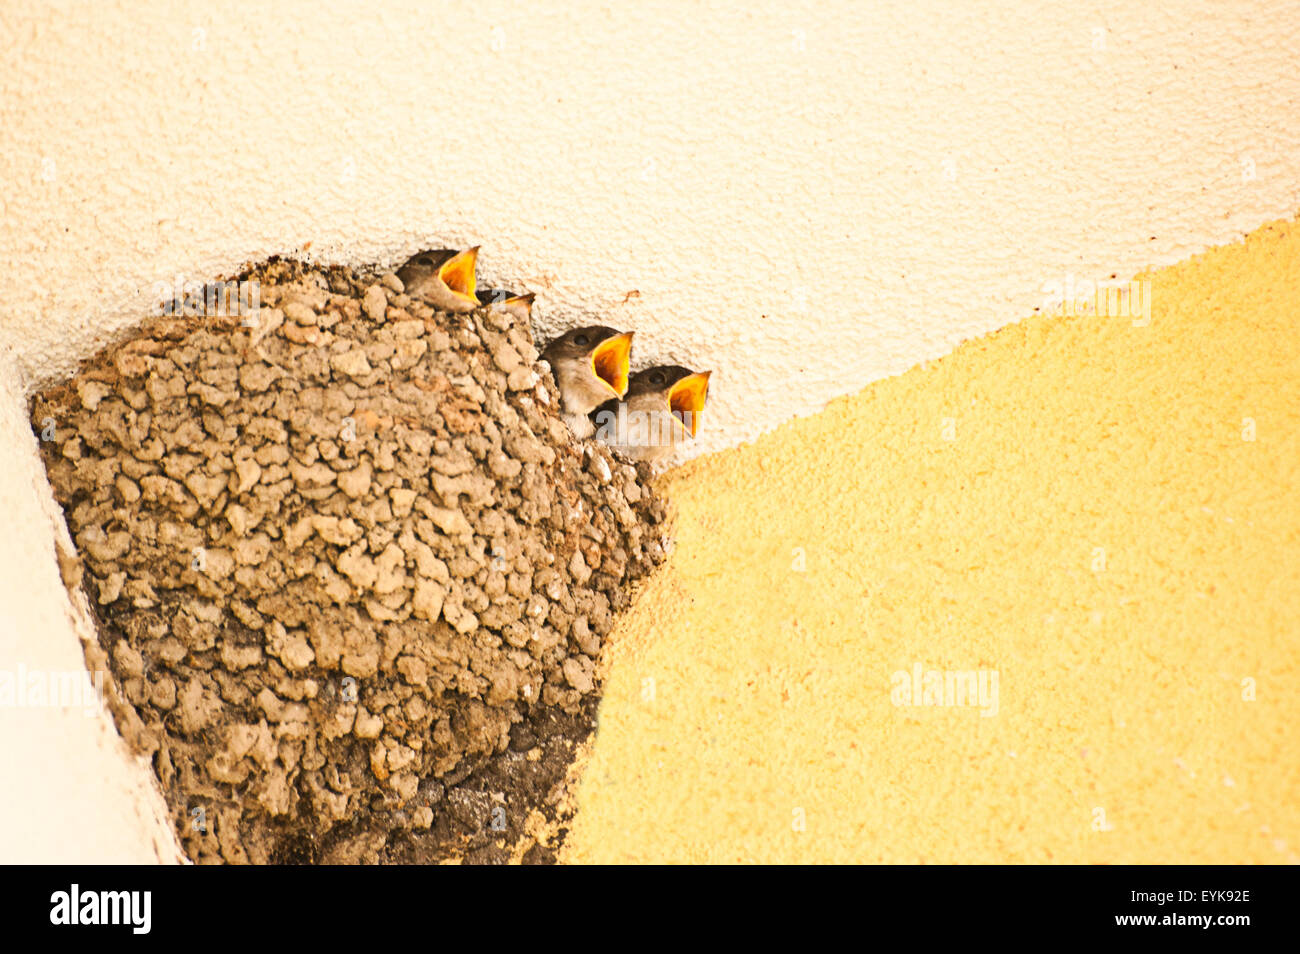 barn swallows chicks in their nest, beaks open, waiting for food - Stock Image